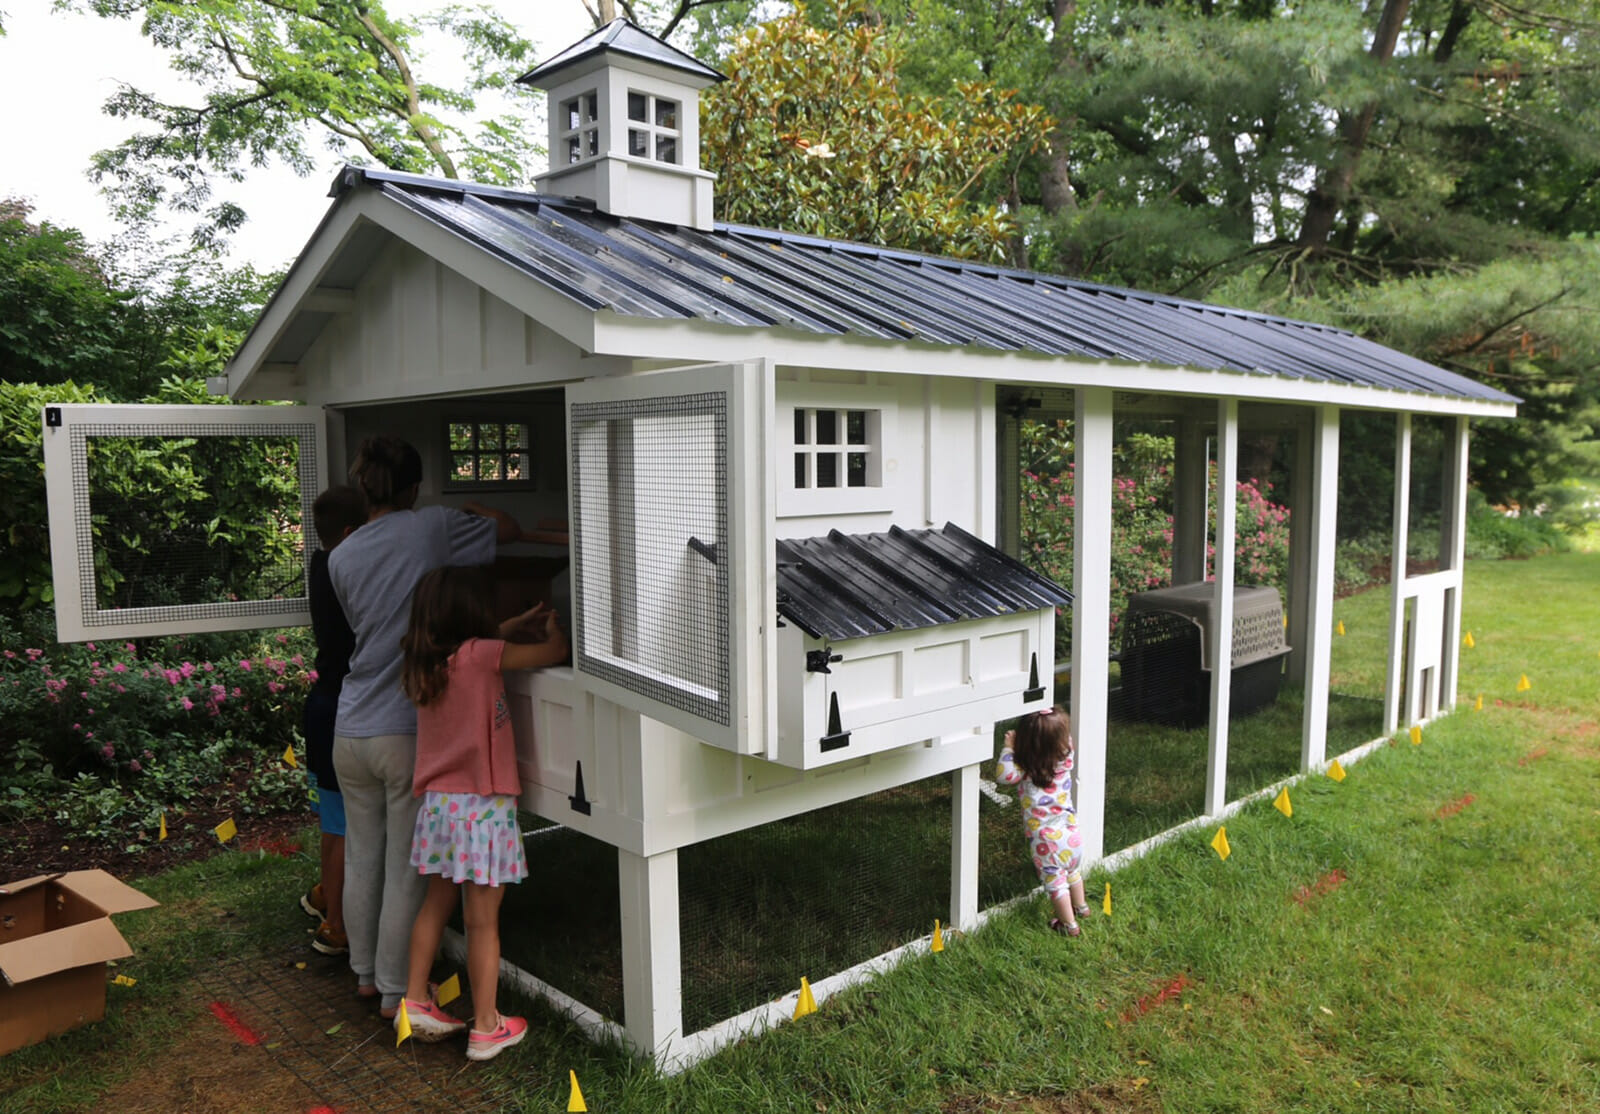 6′ x 18′ Carolina Coop with 4′ x 6′ henhouse in Washington, DC